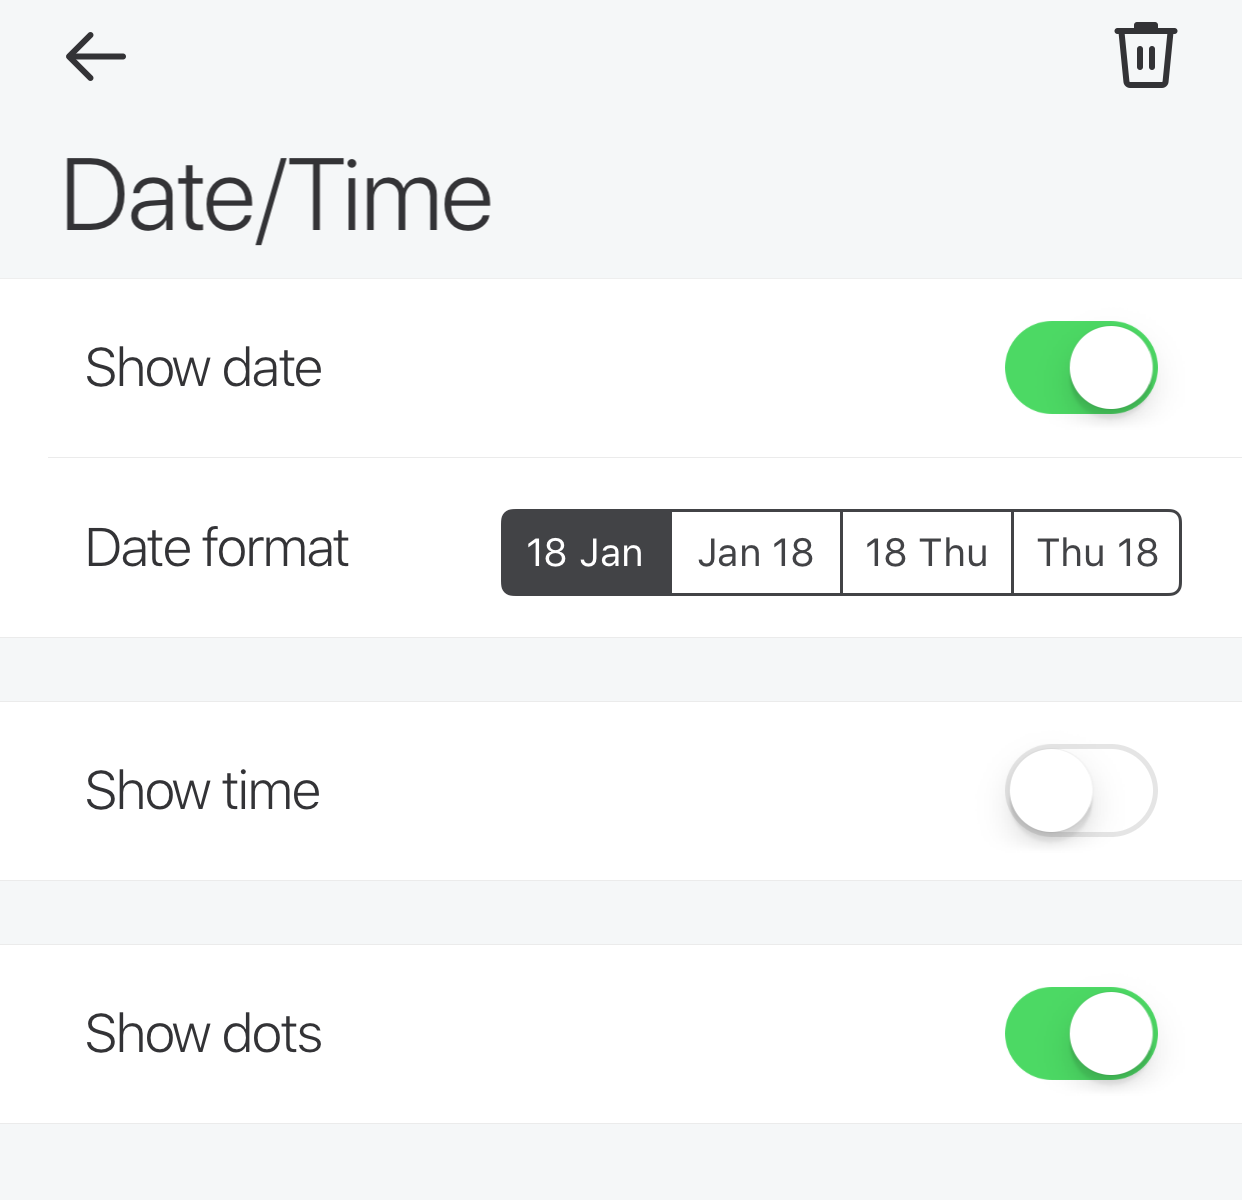 Glance App - Date and Time - Date enabled